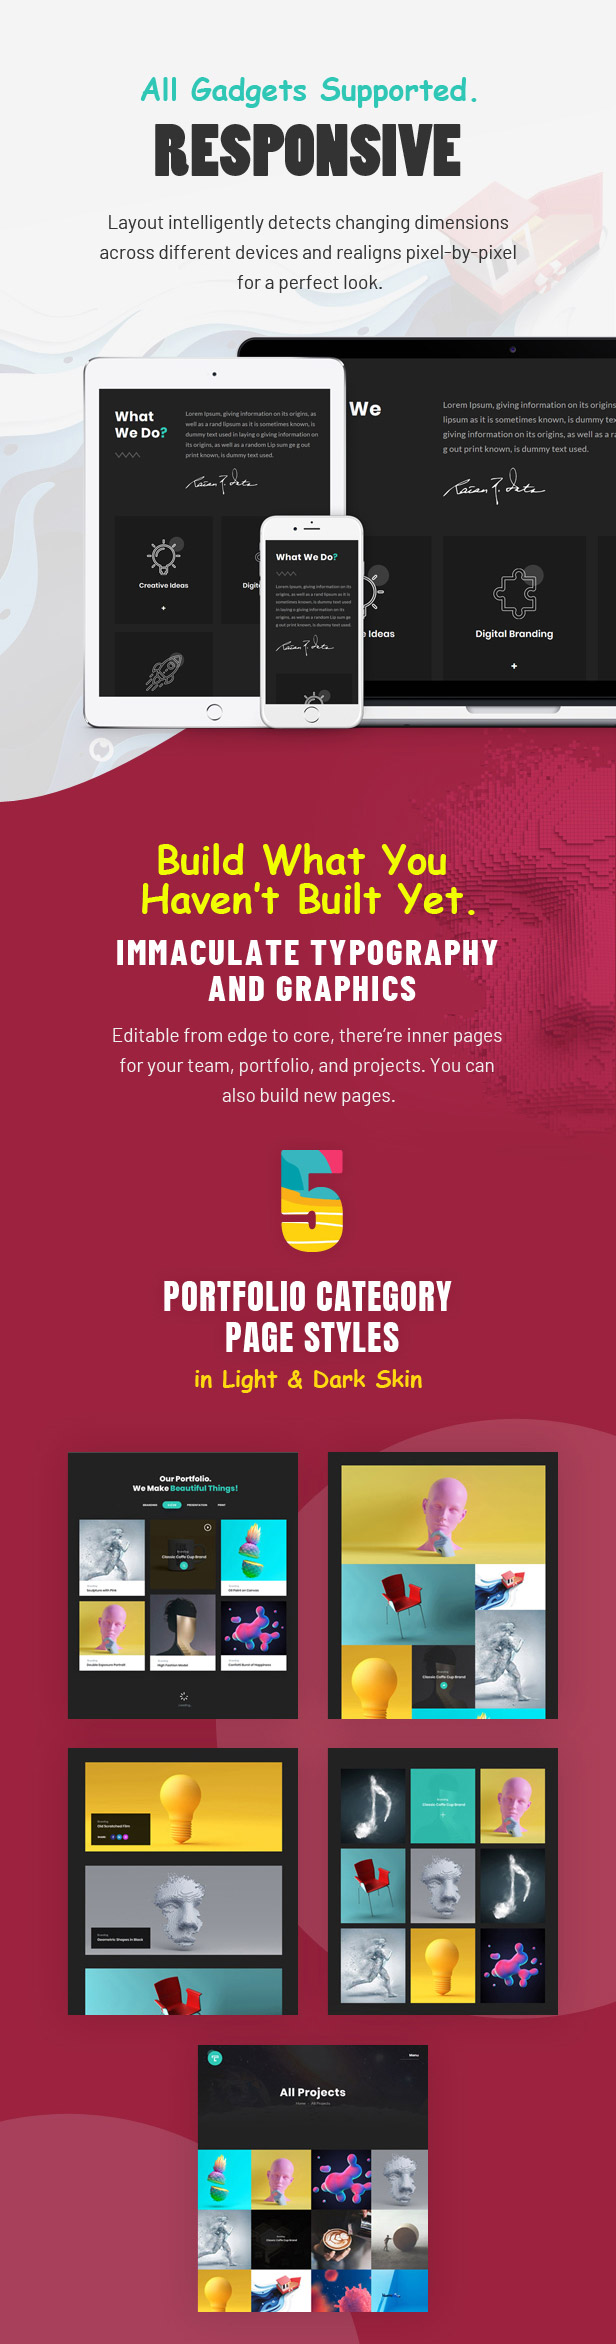 Tacon - A Showcase Portfolio WordPress Theme - 3